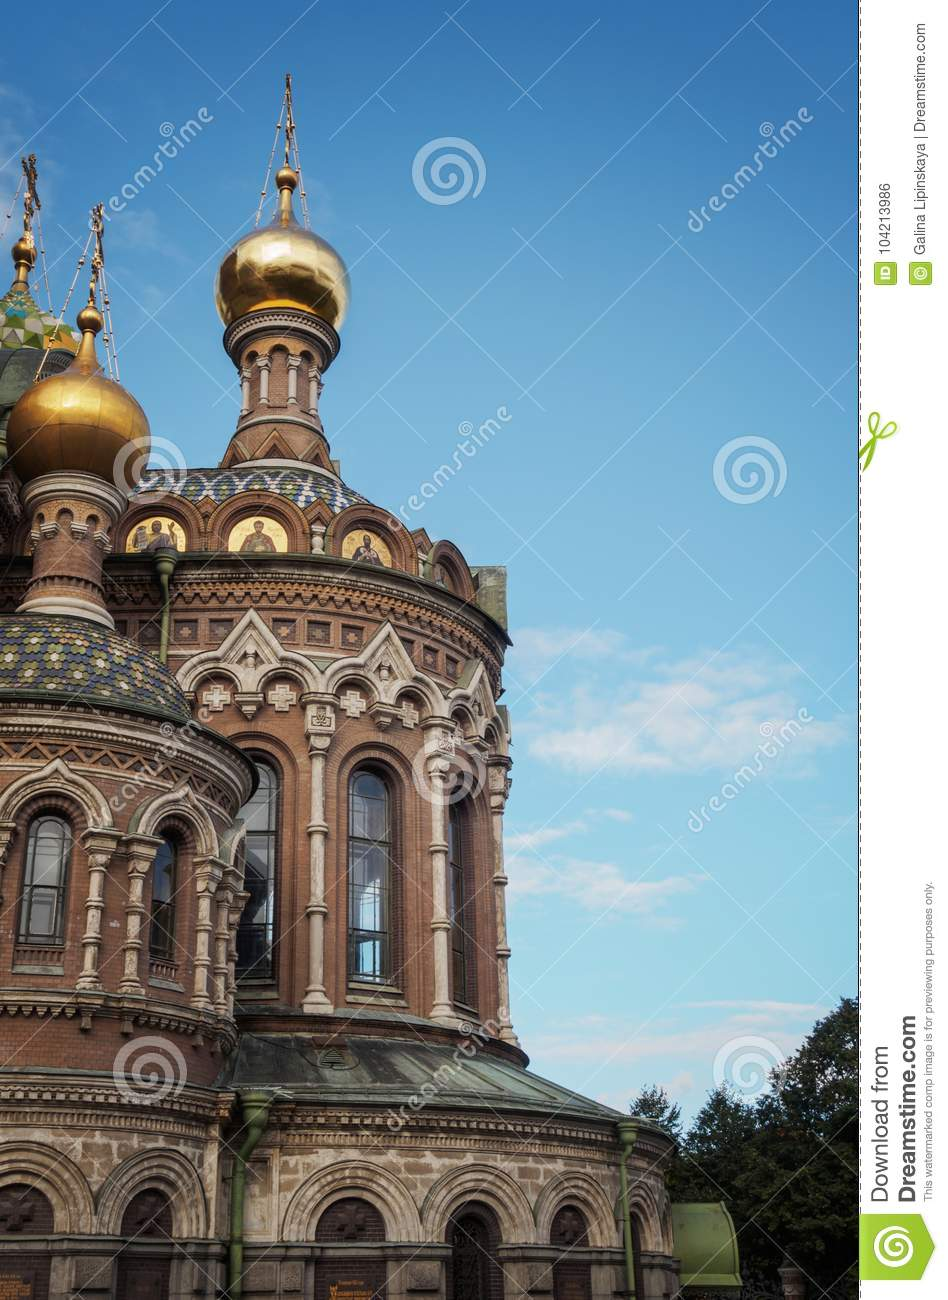 St. Petersburg, Russia - September 10, 2017:View of the Dome of the Savior on Blood in St. Petersburg